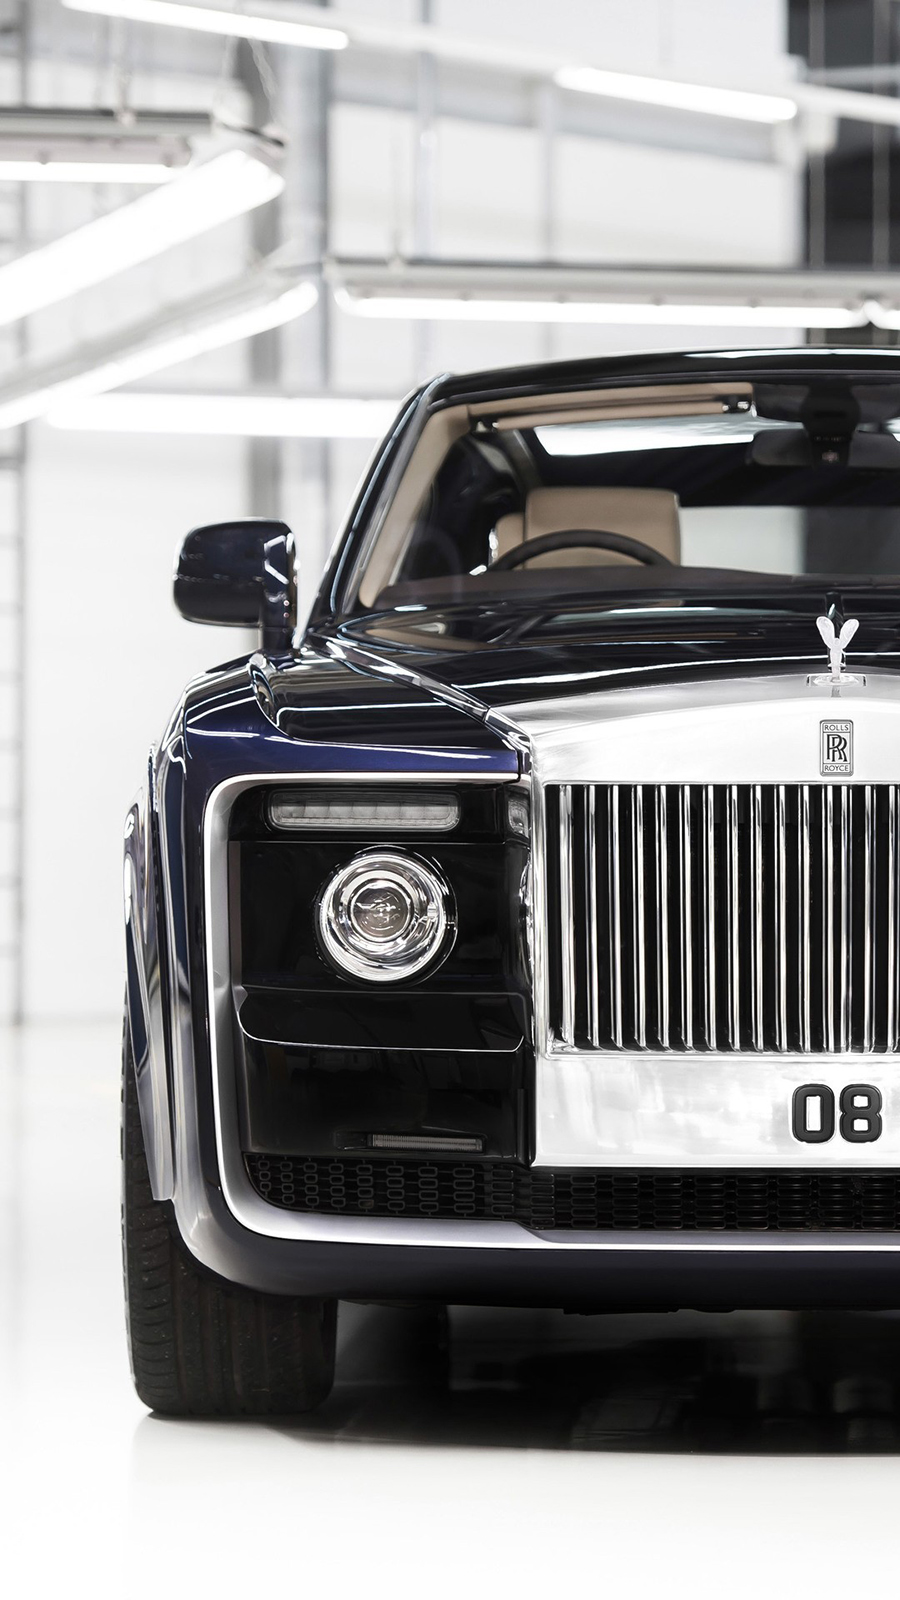 Best Wallpapers about Bently for Phone